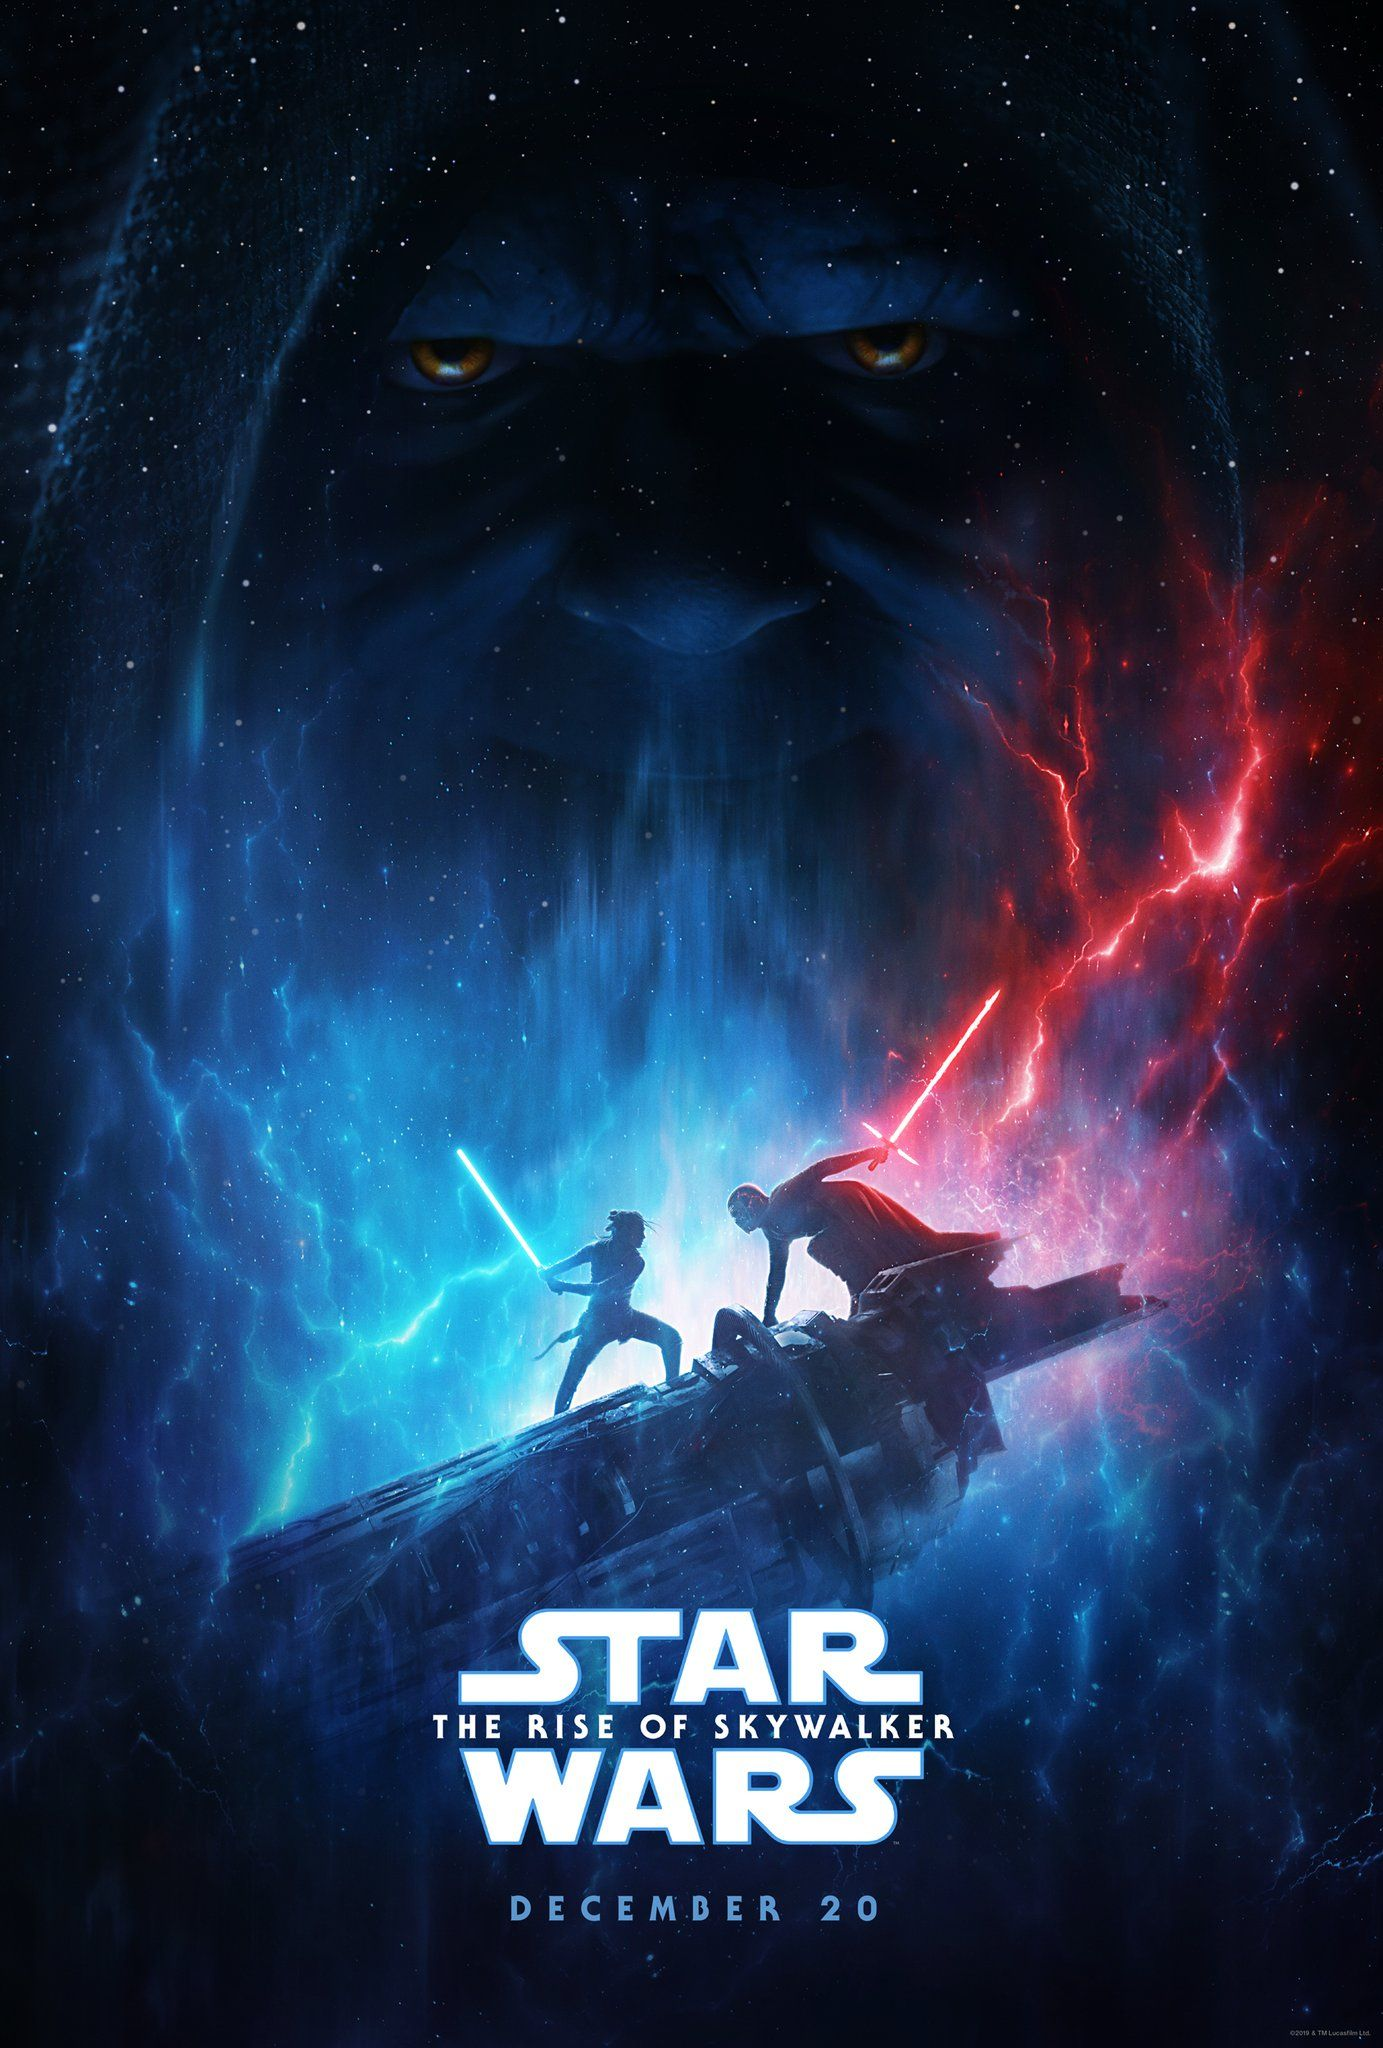 Star Wars 9 The Rise Of Skywalker Poster Star Wars Watch Star Wars Episodes Star Wars Poster